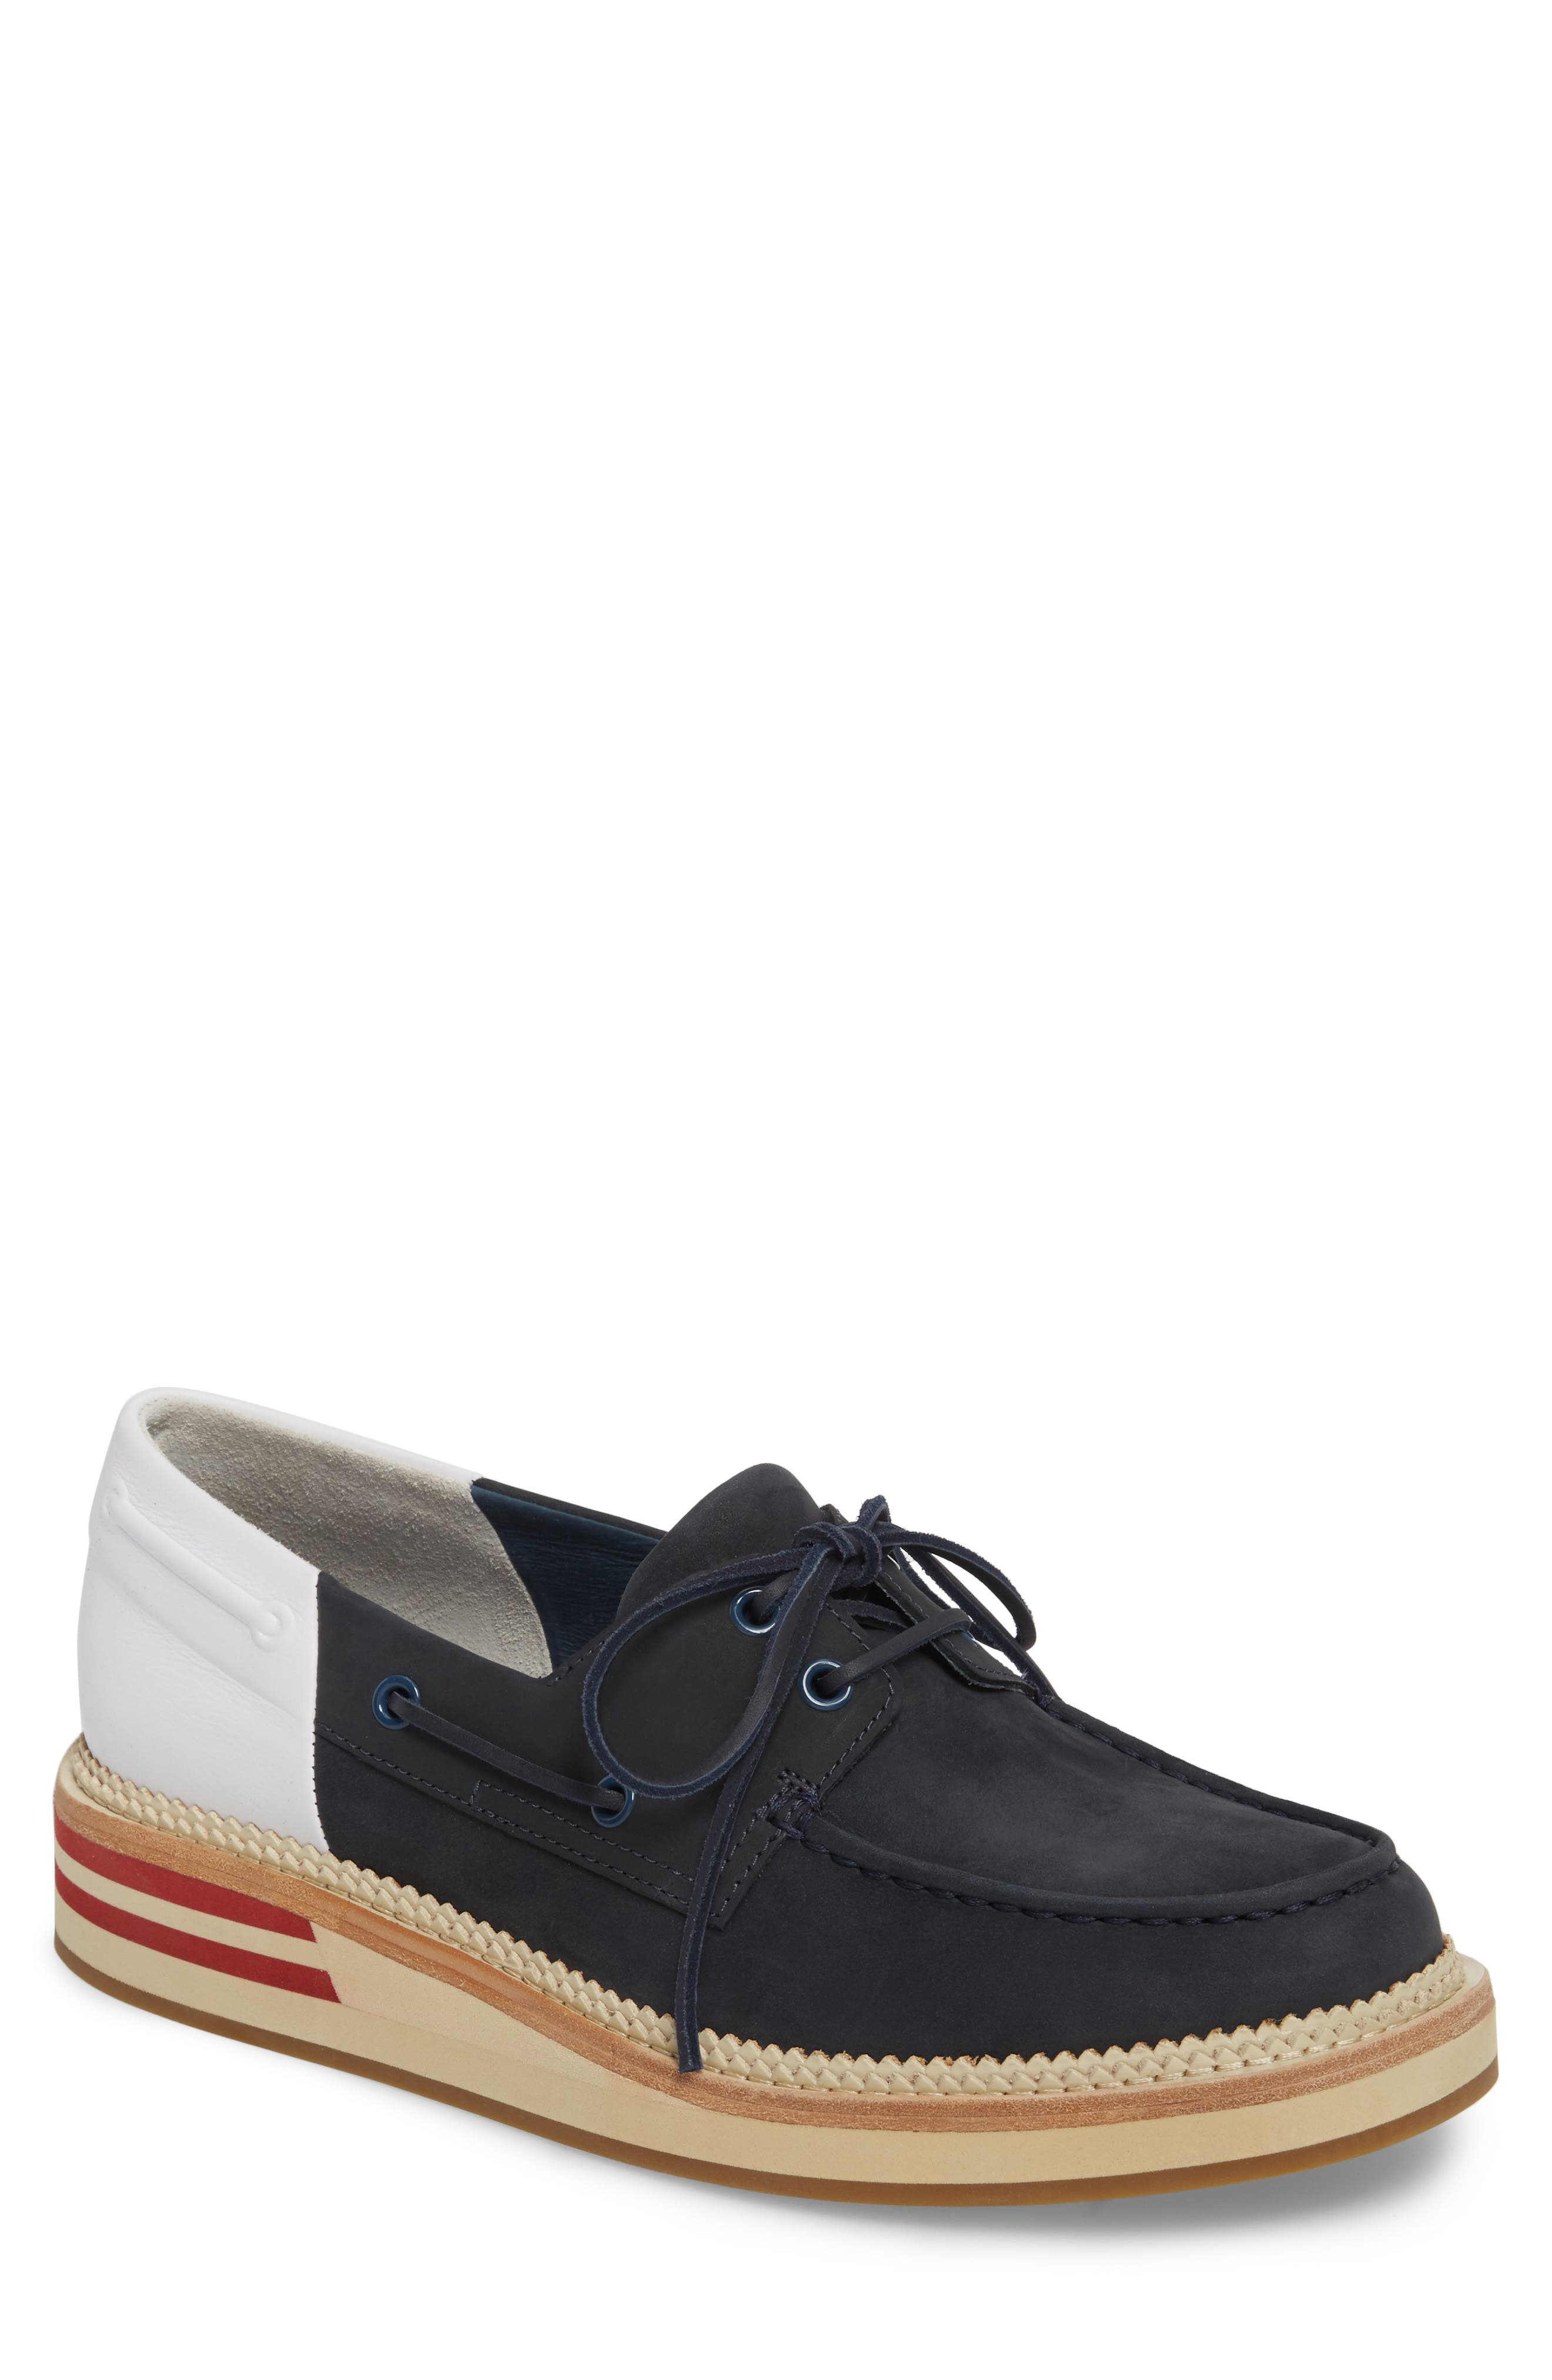 Cloud Colorblocked Boat Shoe,                         Main,                         color, Navy/ White